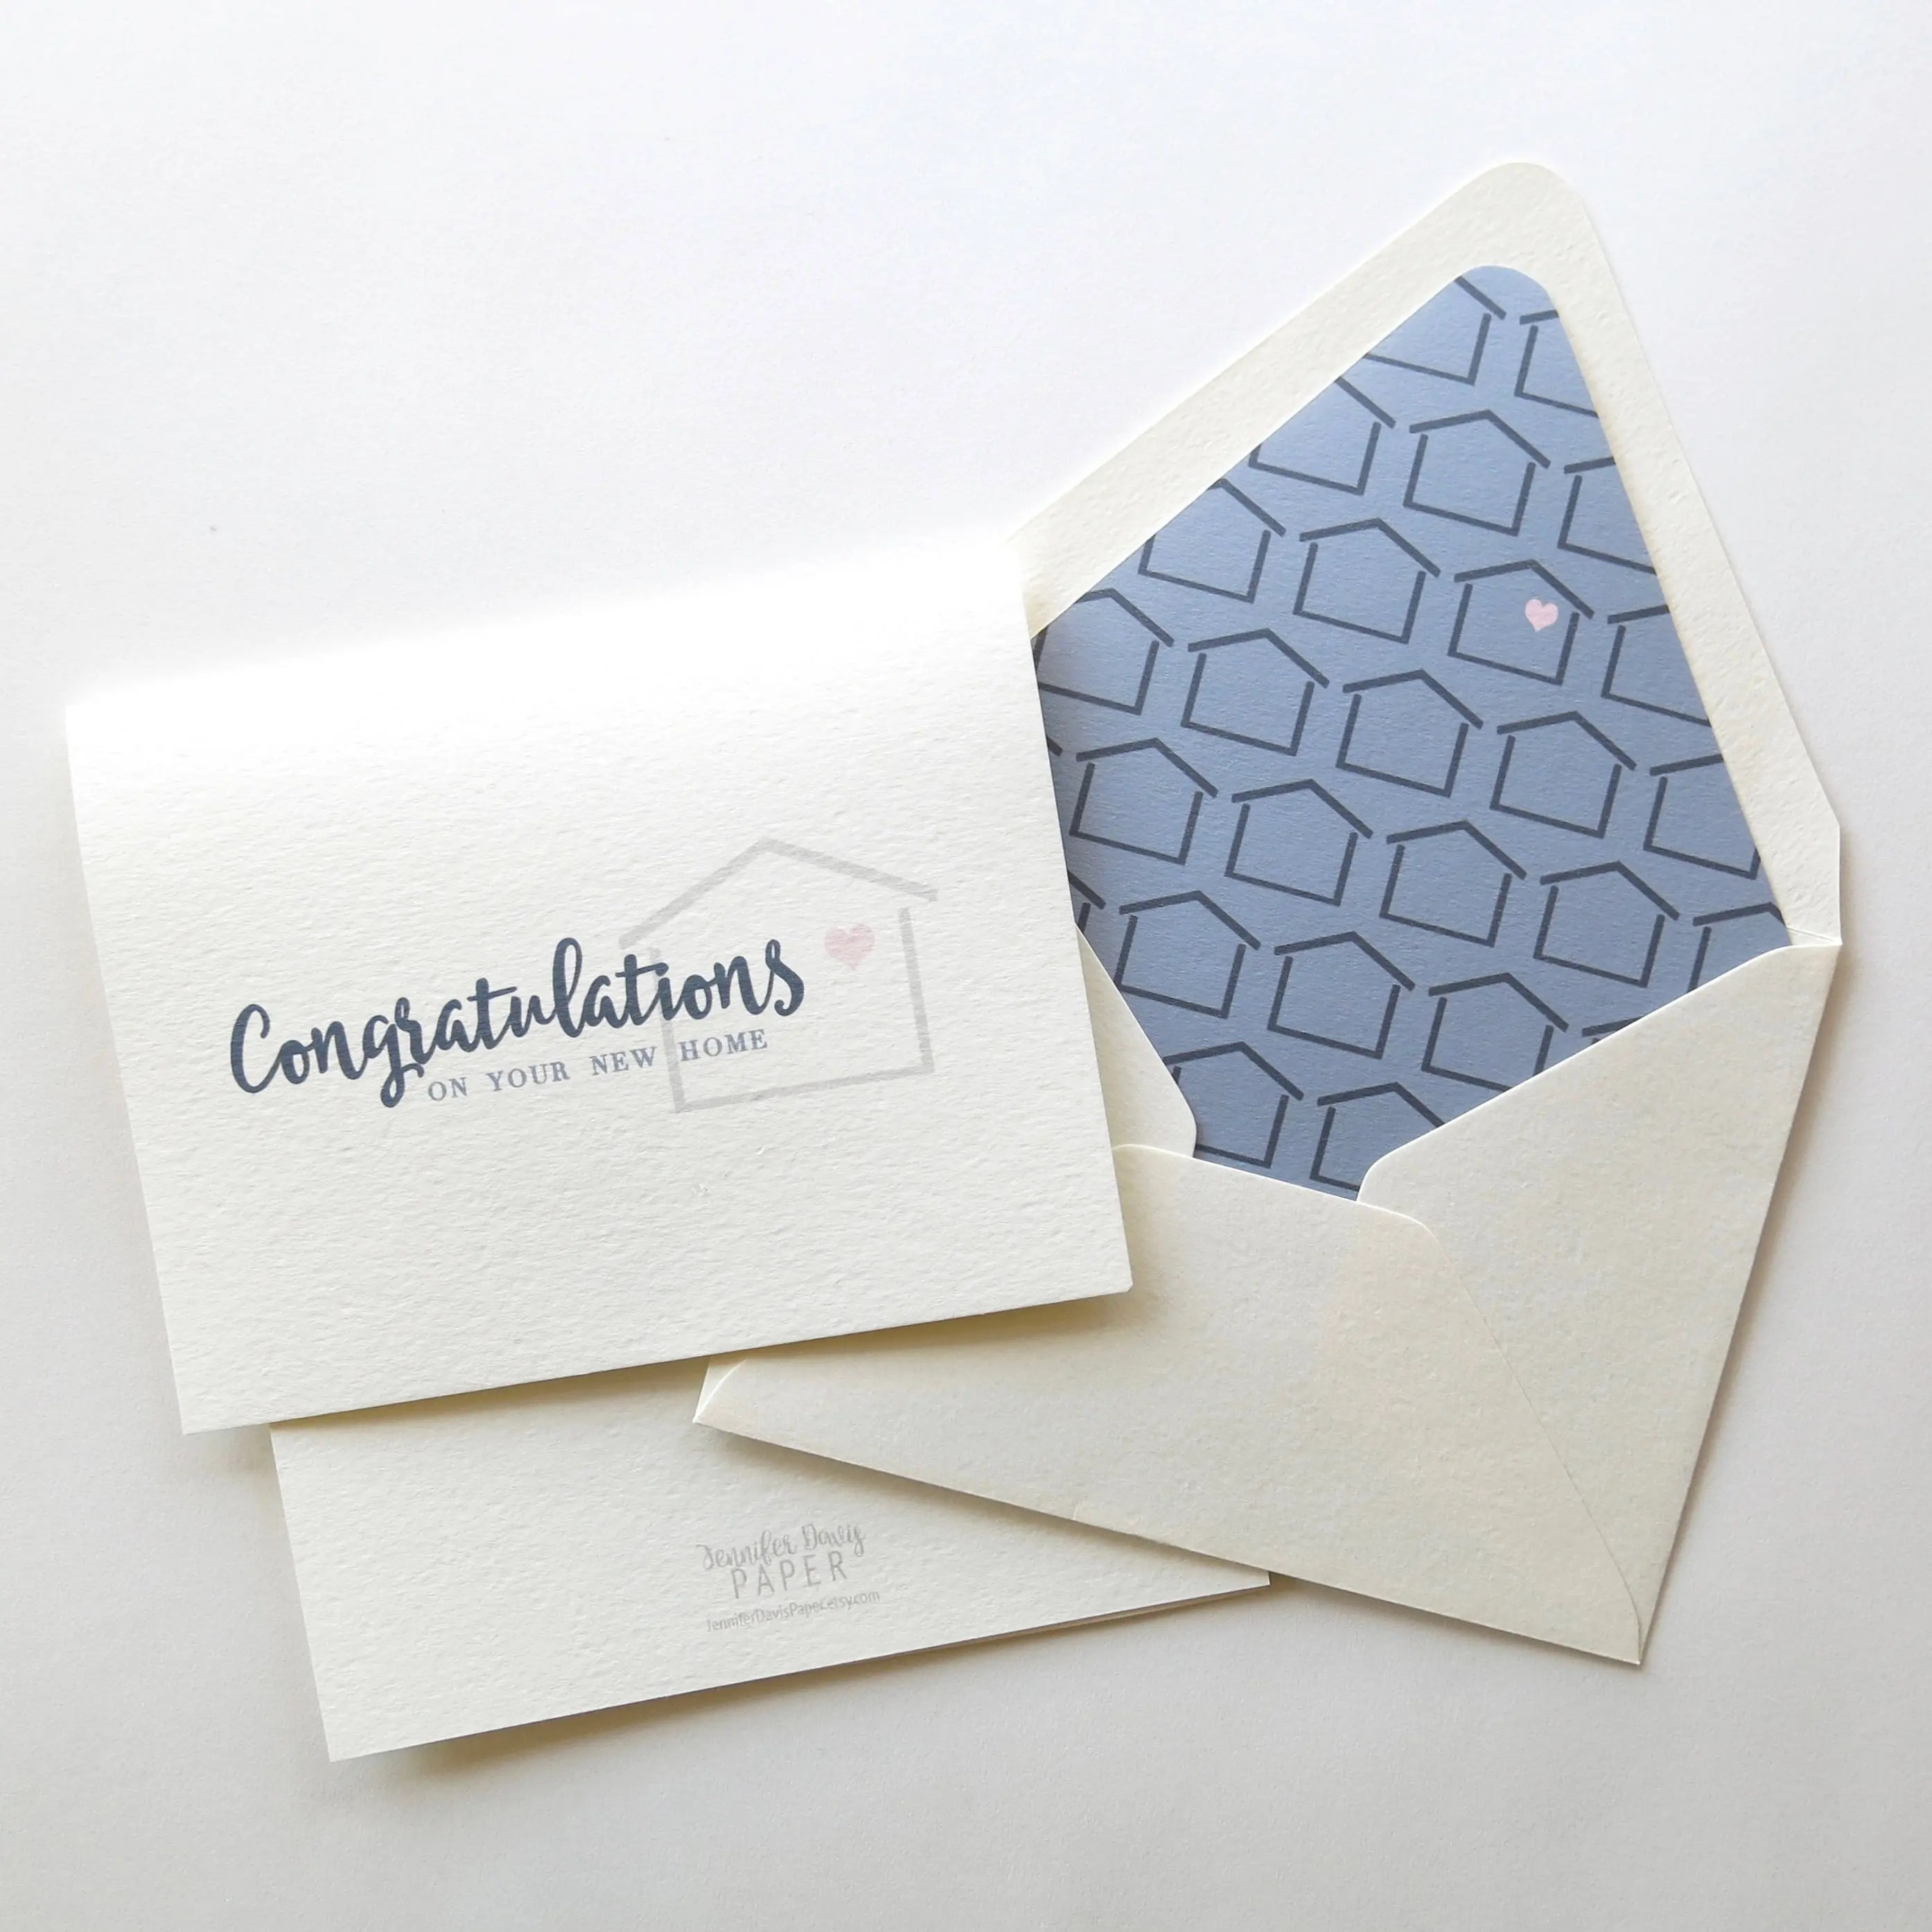 Congratulations on Your New Home Real Estate Agent Card Etsy